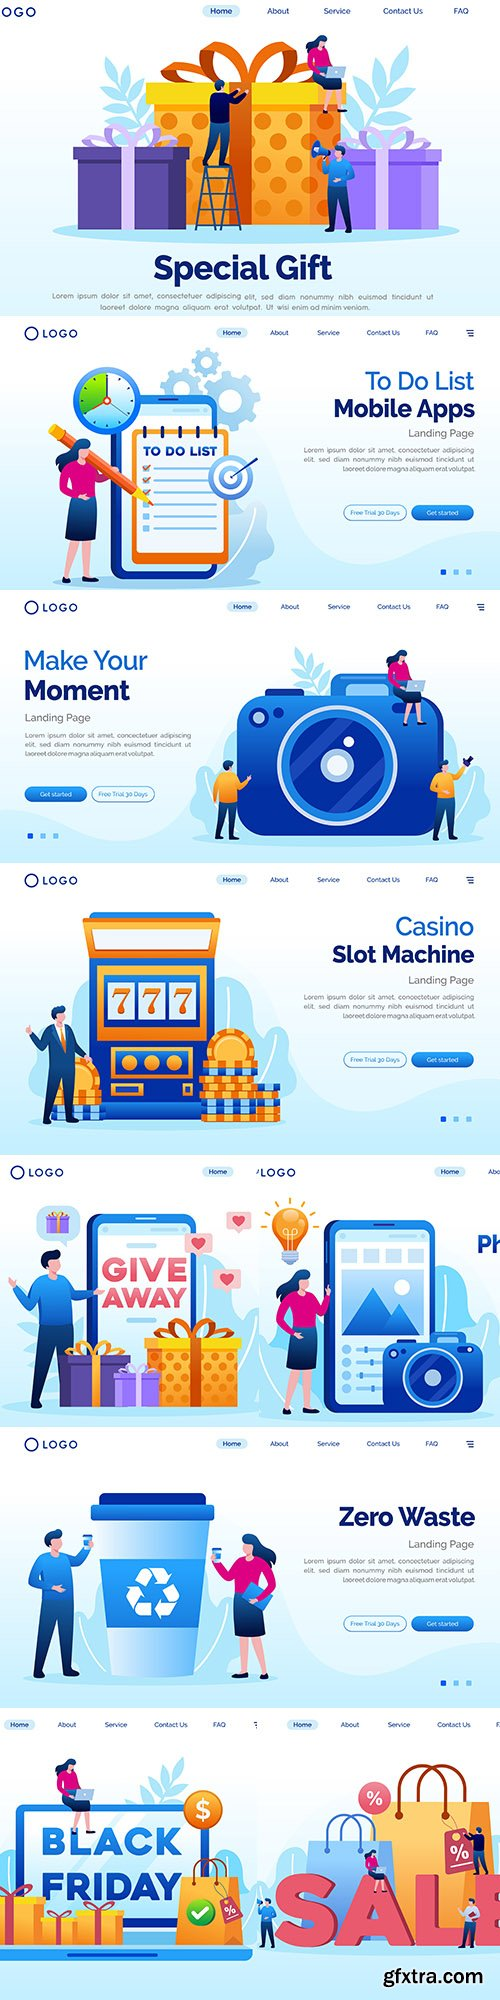 Flat design landing page website and applications